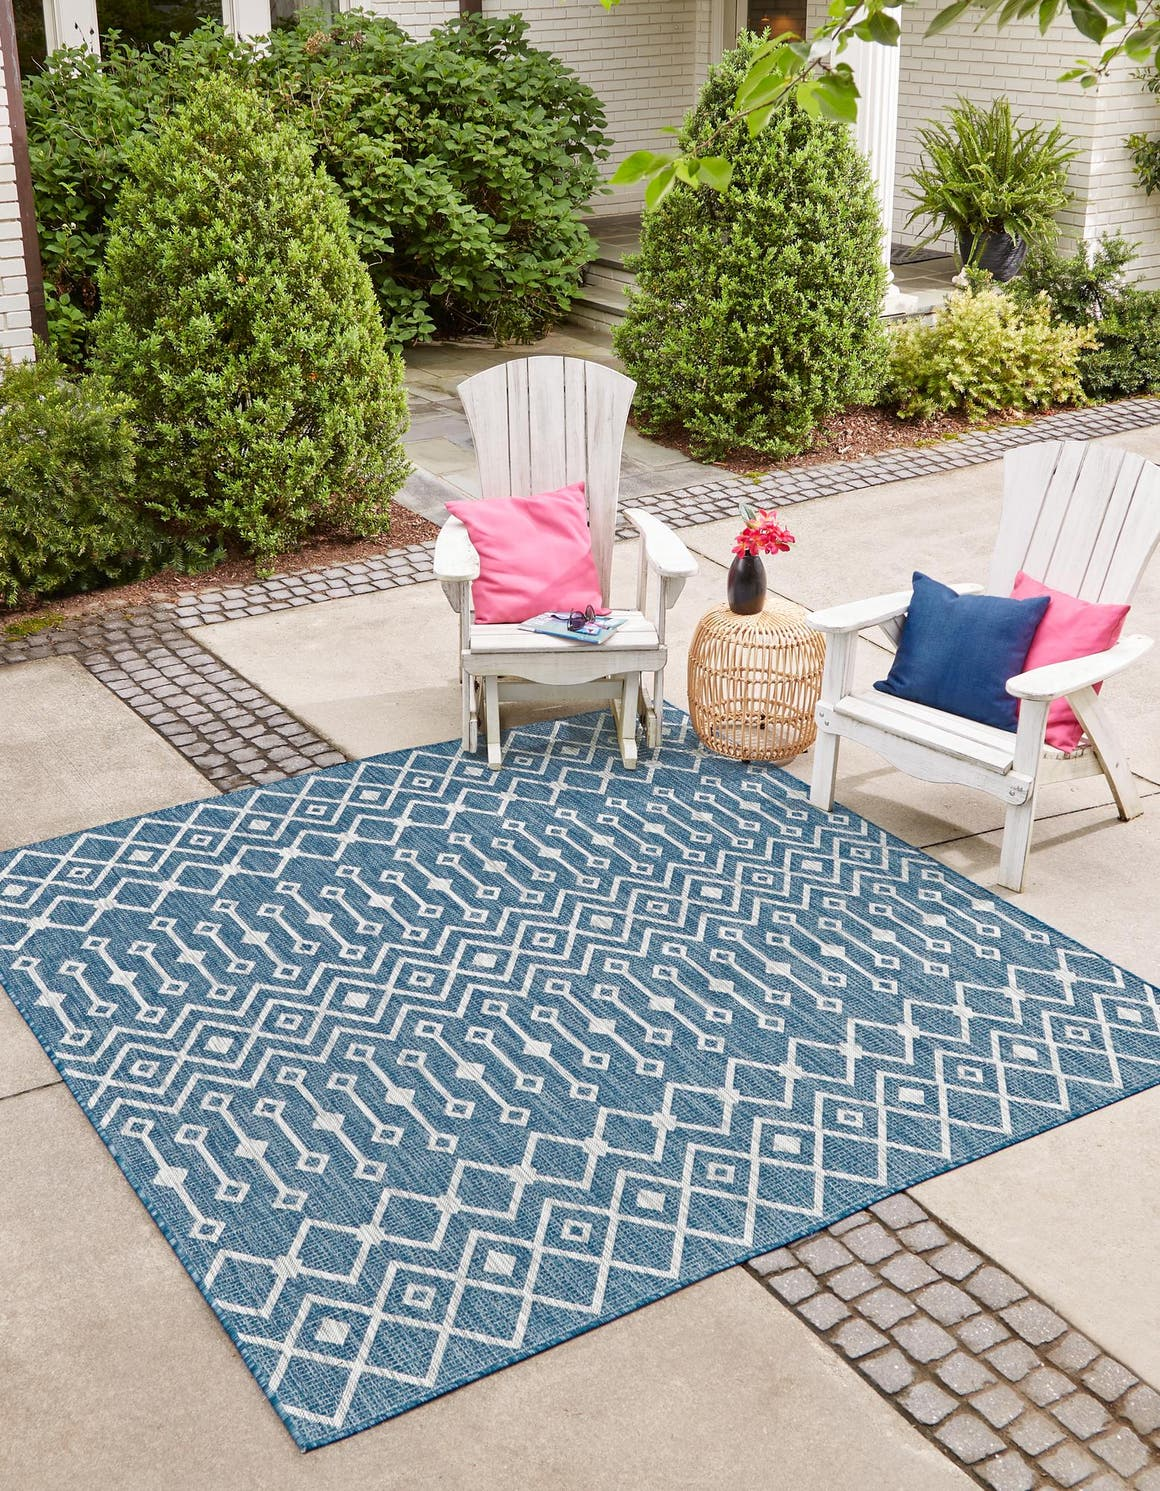 5' x 5' Outdoor Trellis Square Rug main image